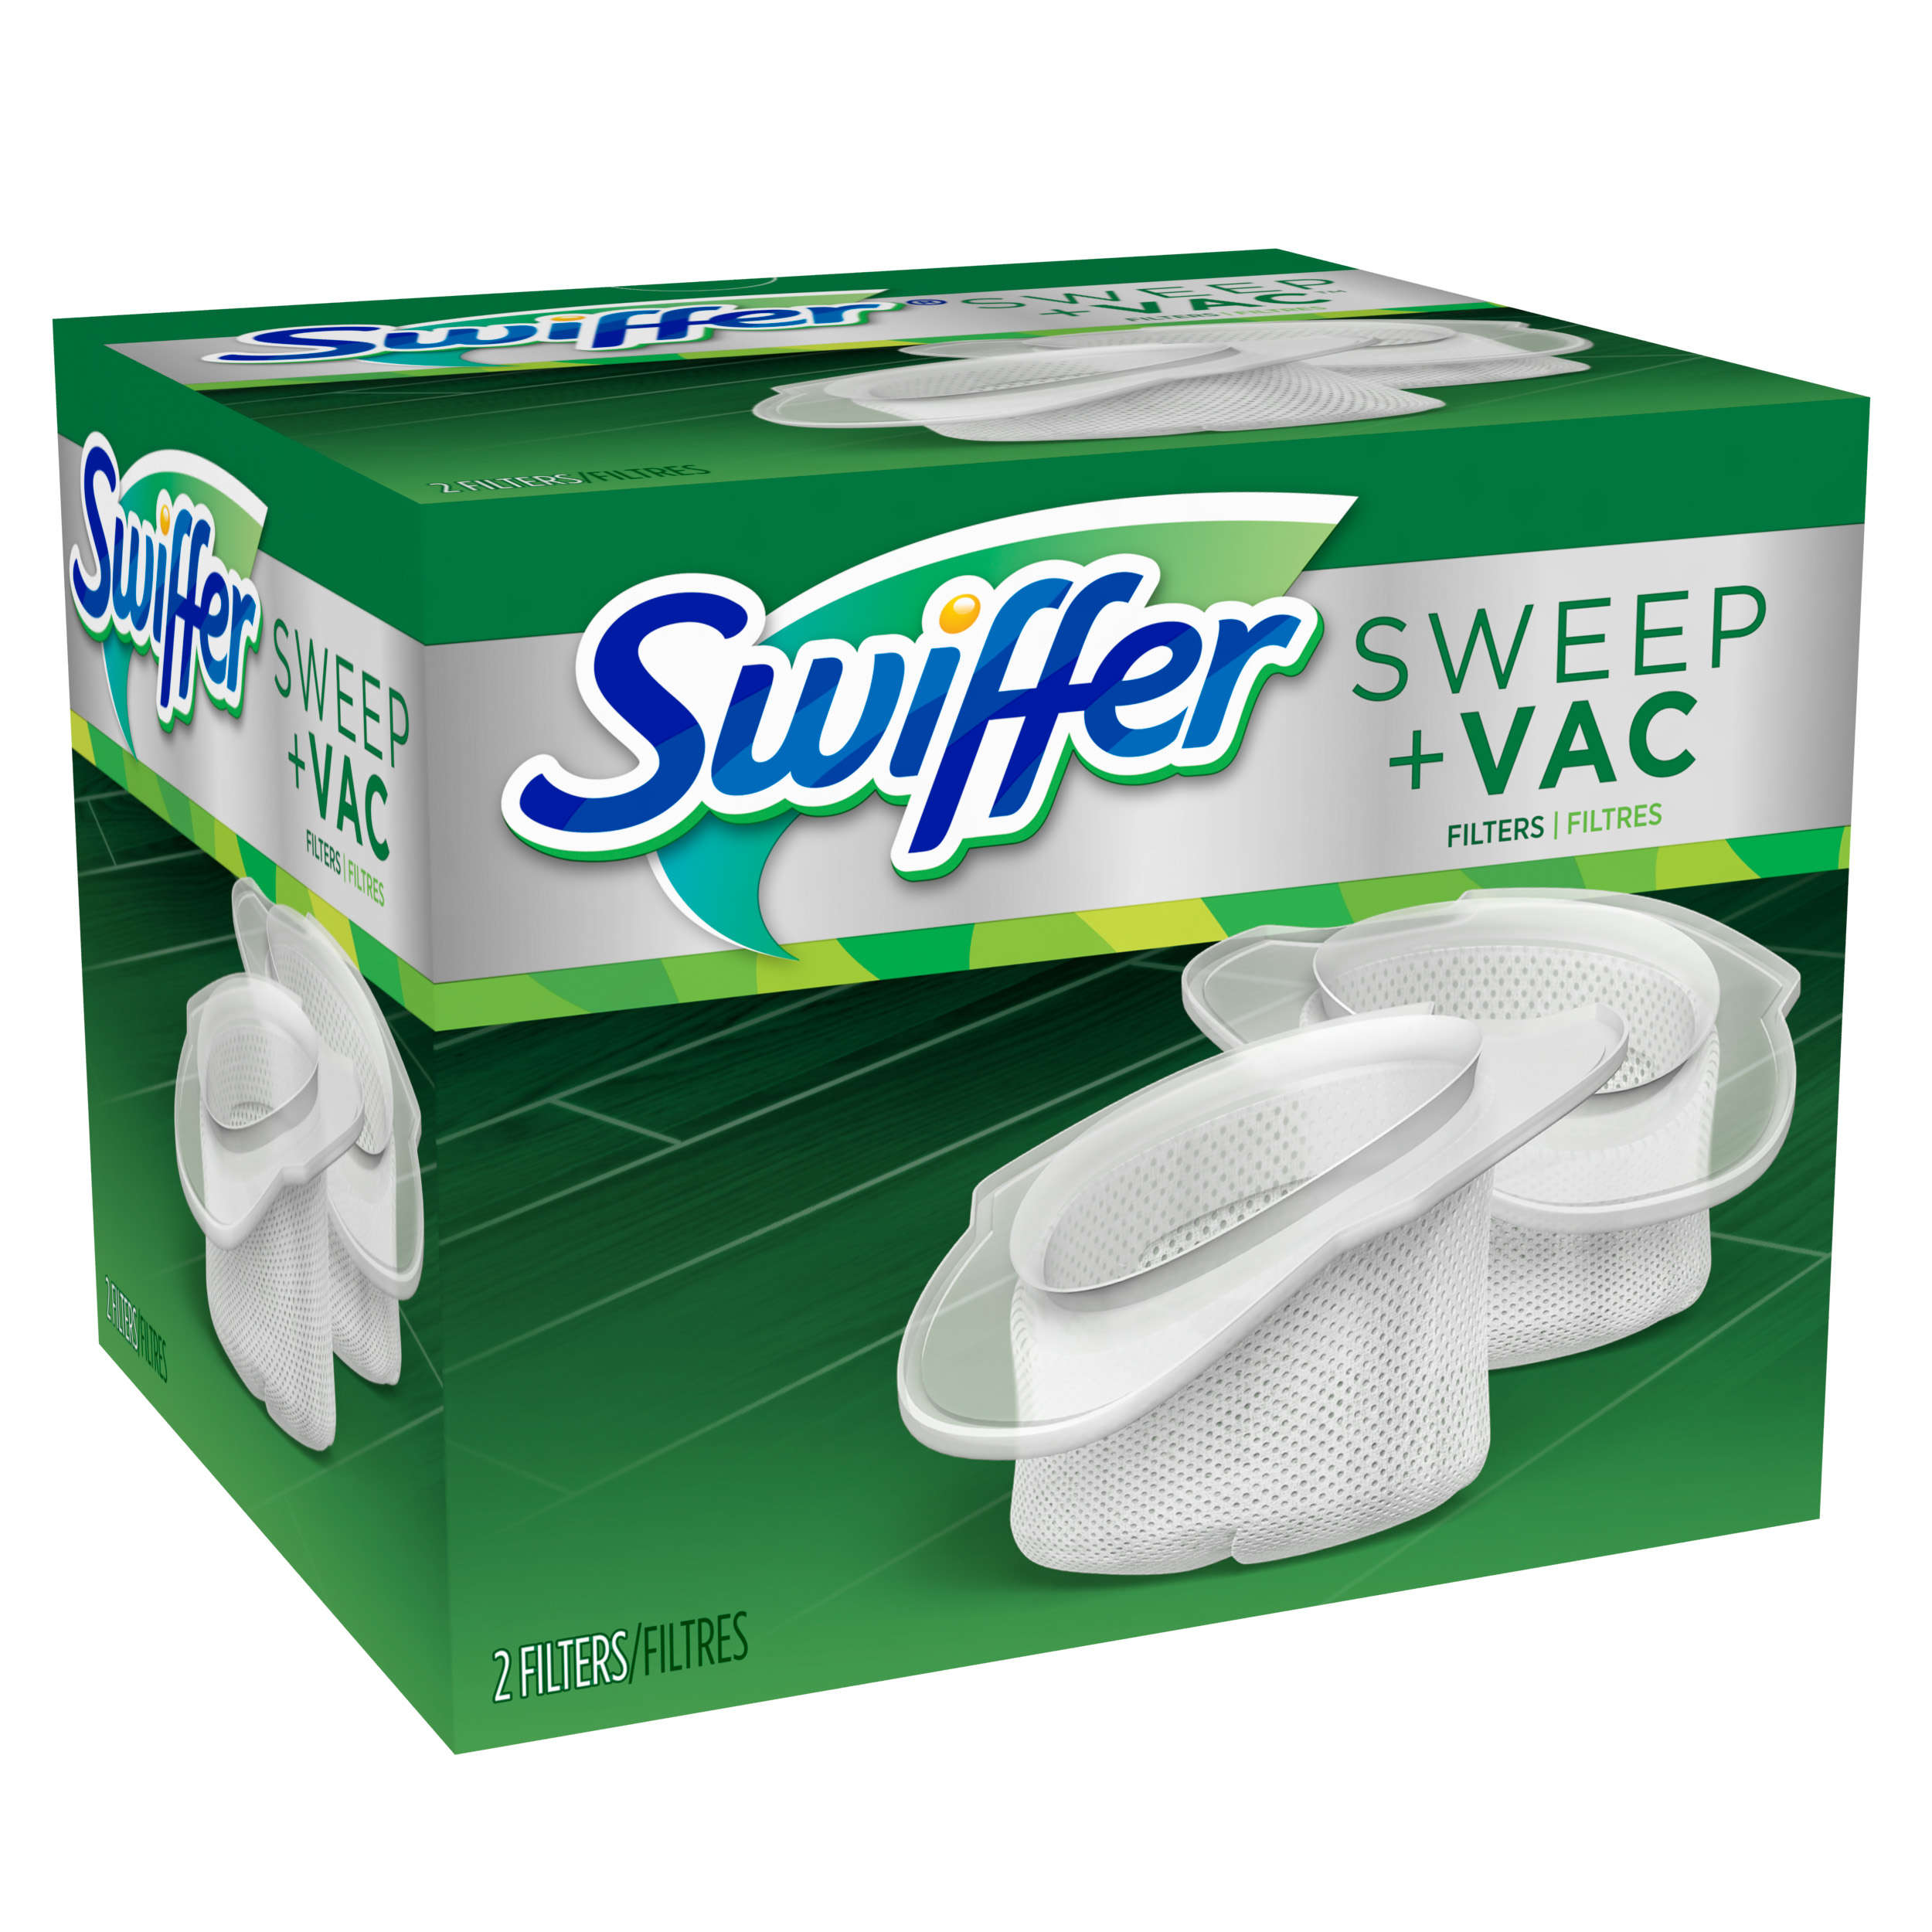 Swiffer Sweep + Vac Vacuum Replacement Filter, 2 Count